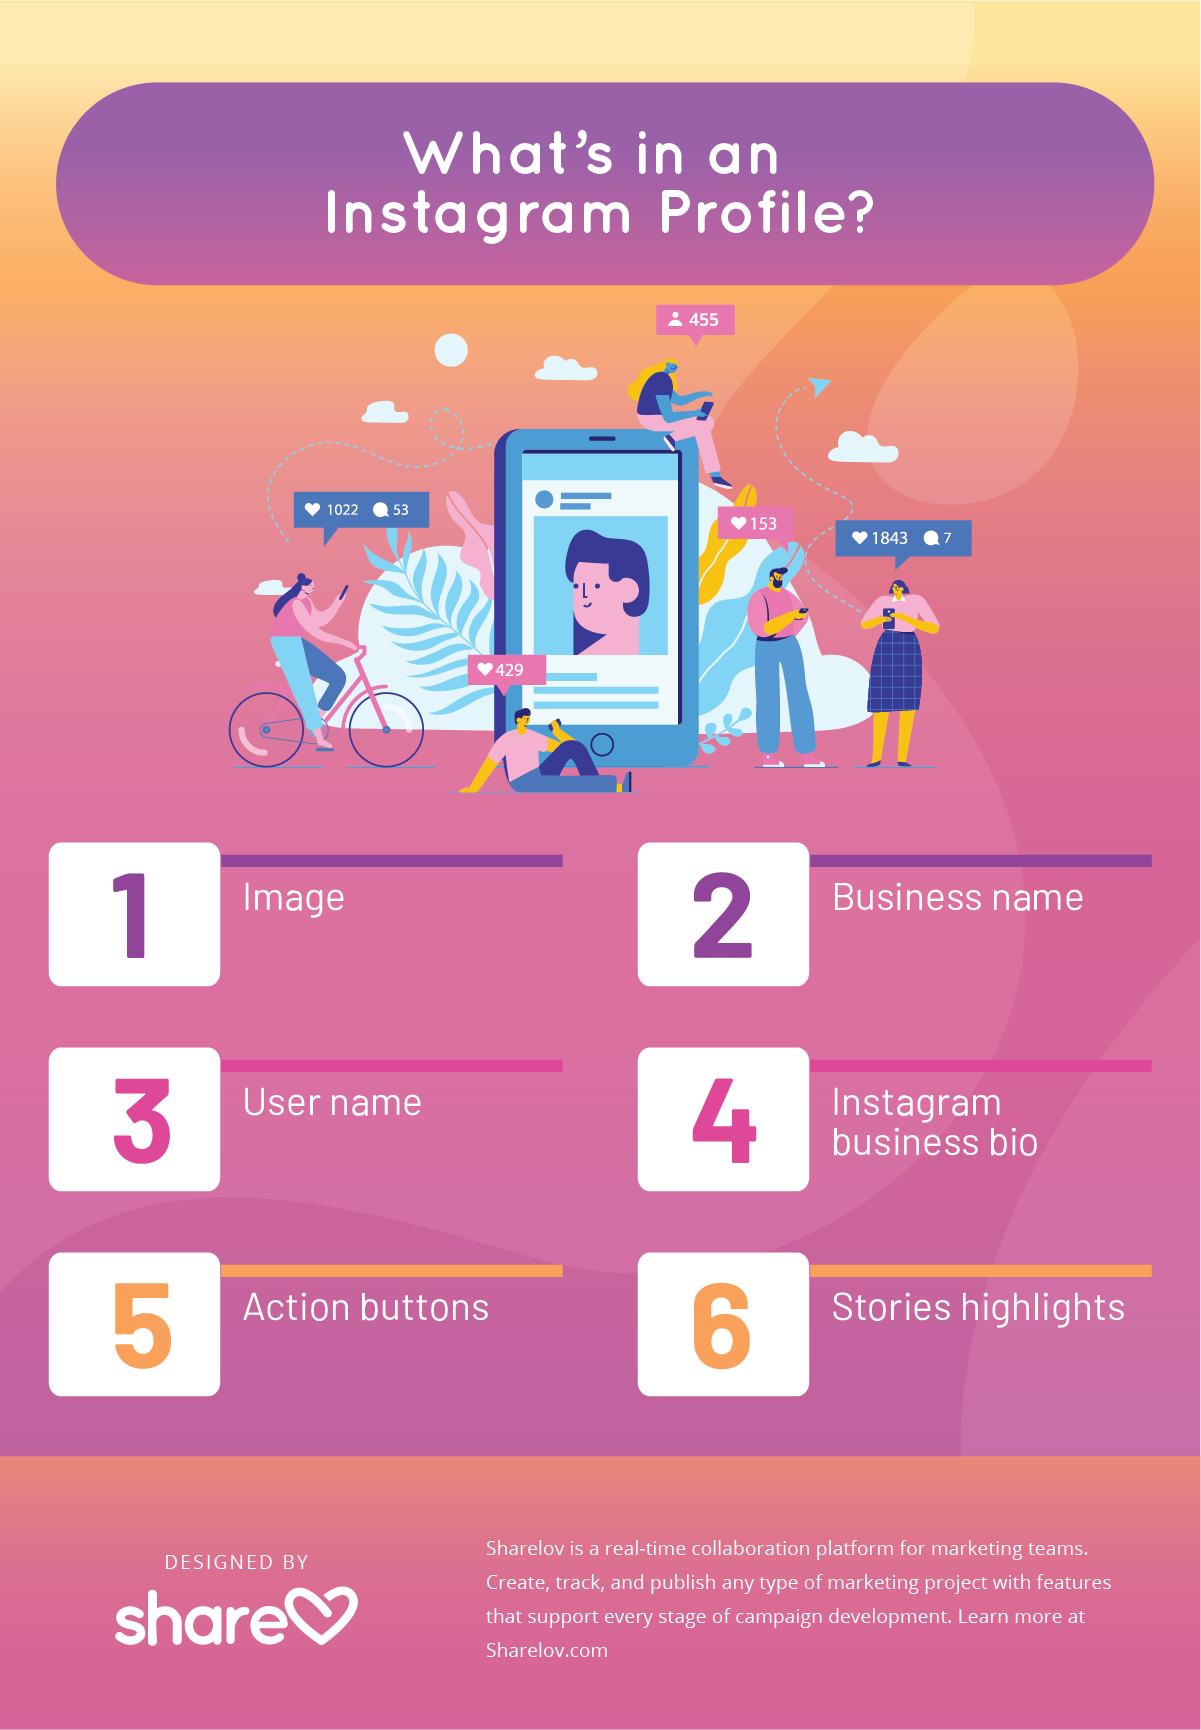 What's in an Instagram Profile? infographic